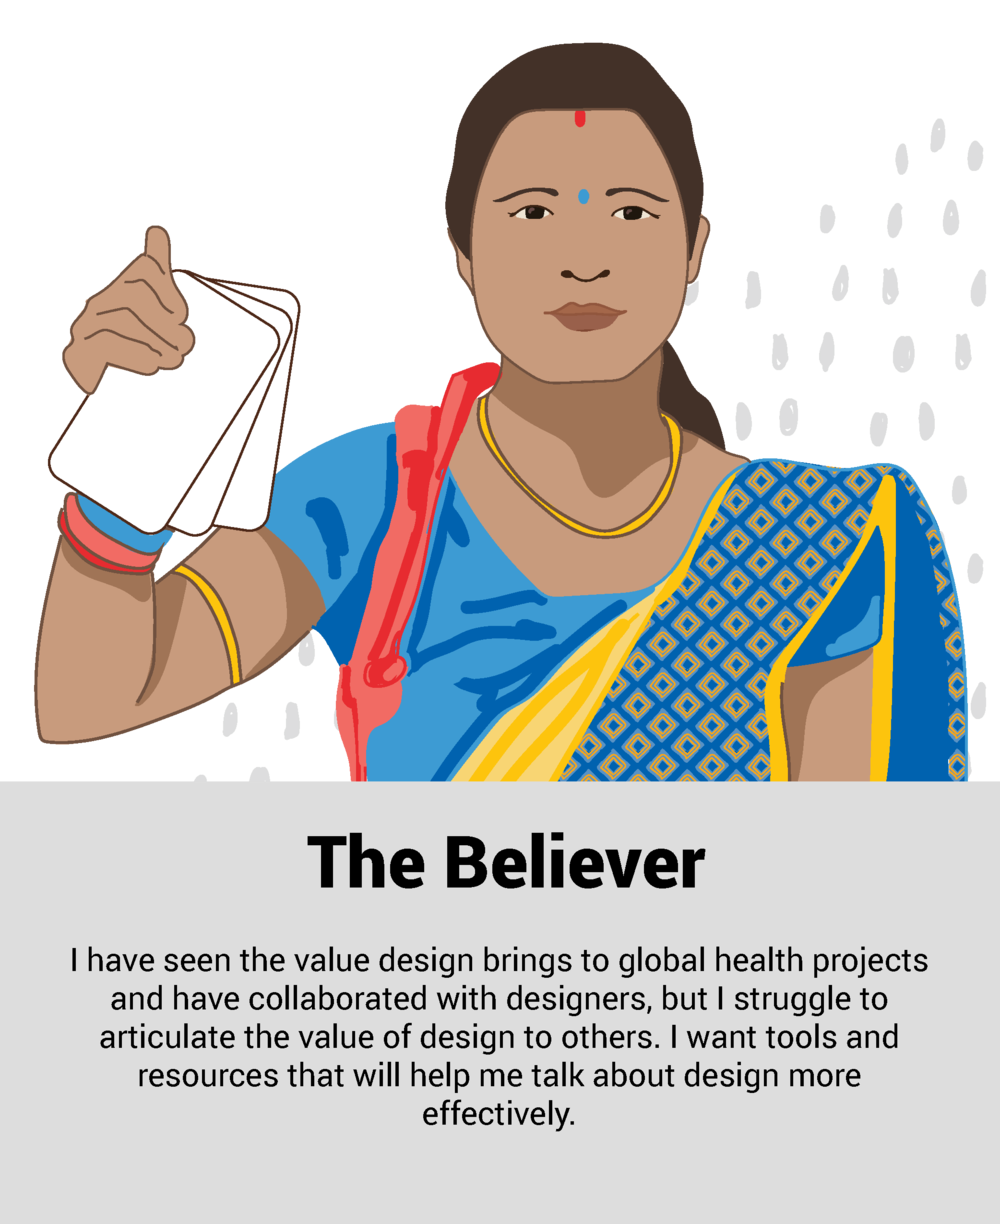 """""""I have seen the value design brings to global health projects and have collaborated with designers, but I struggle to articulate the value of design to others. I want tools and resources that will help me talk about design more effectively""""."""